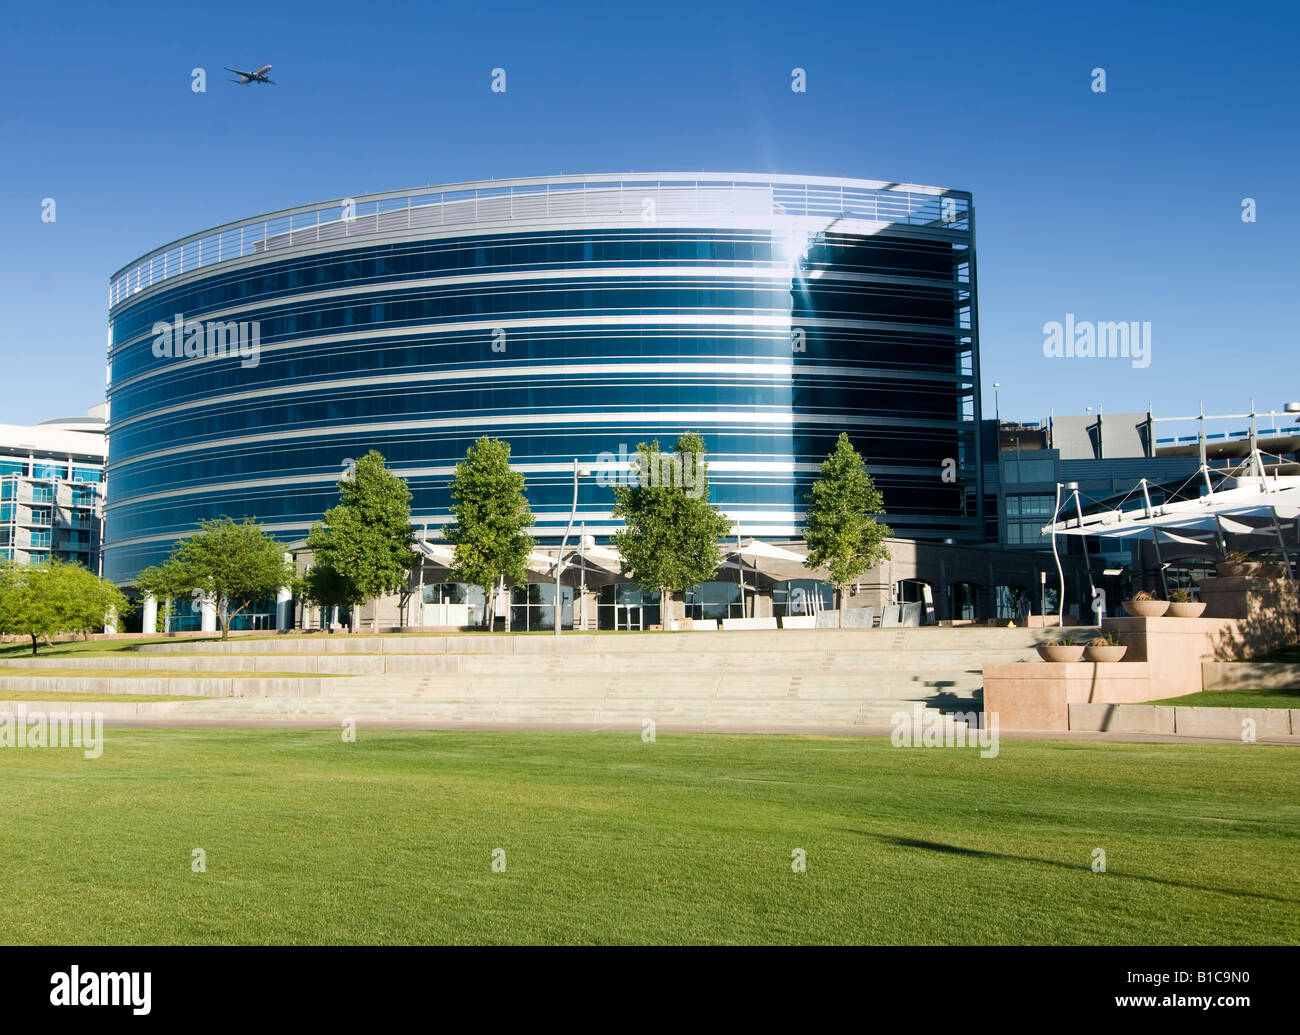 Skyscraper development in downtown Tempe, AZ located by town lake, with aircraft in sky. - Stock Image